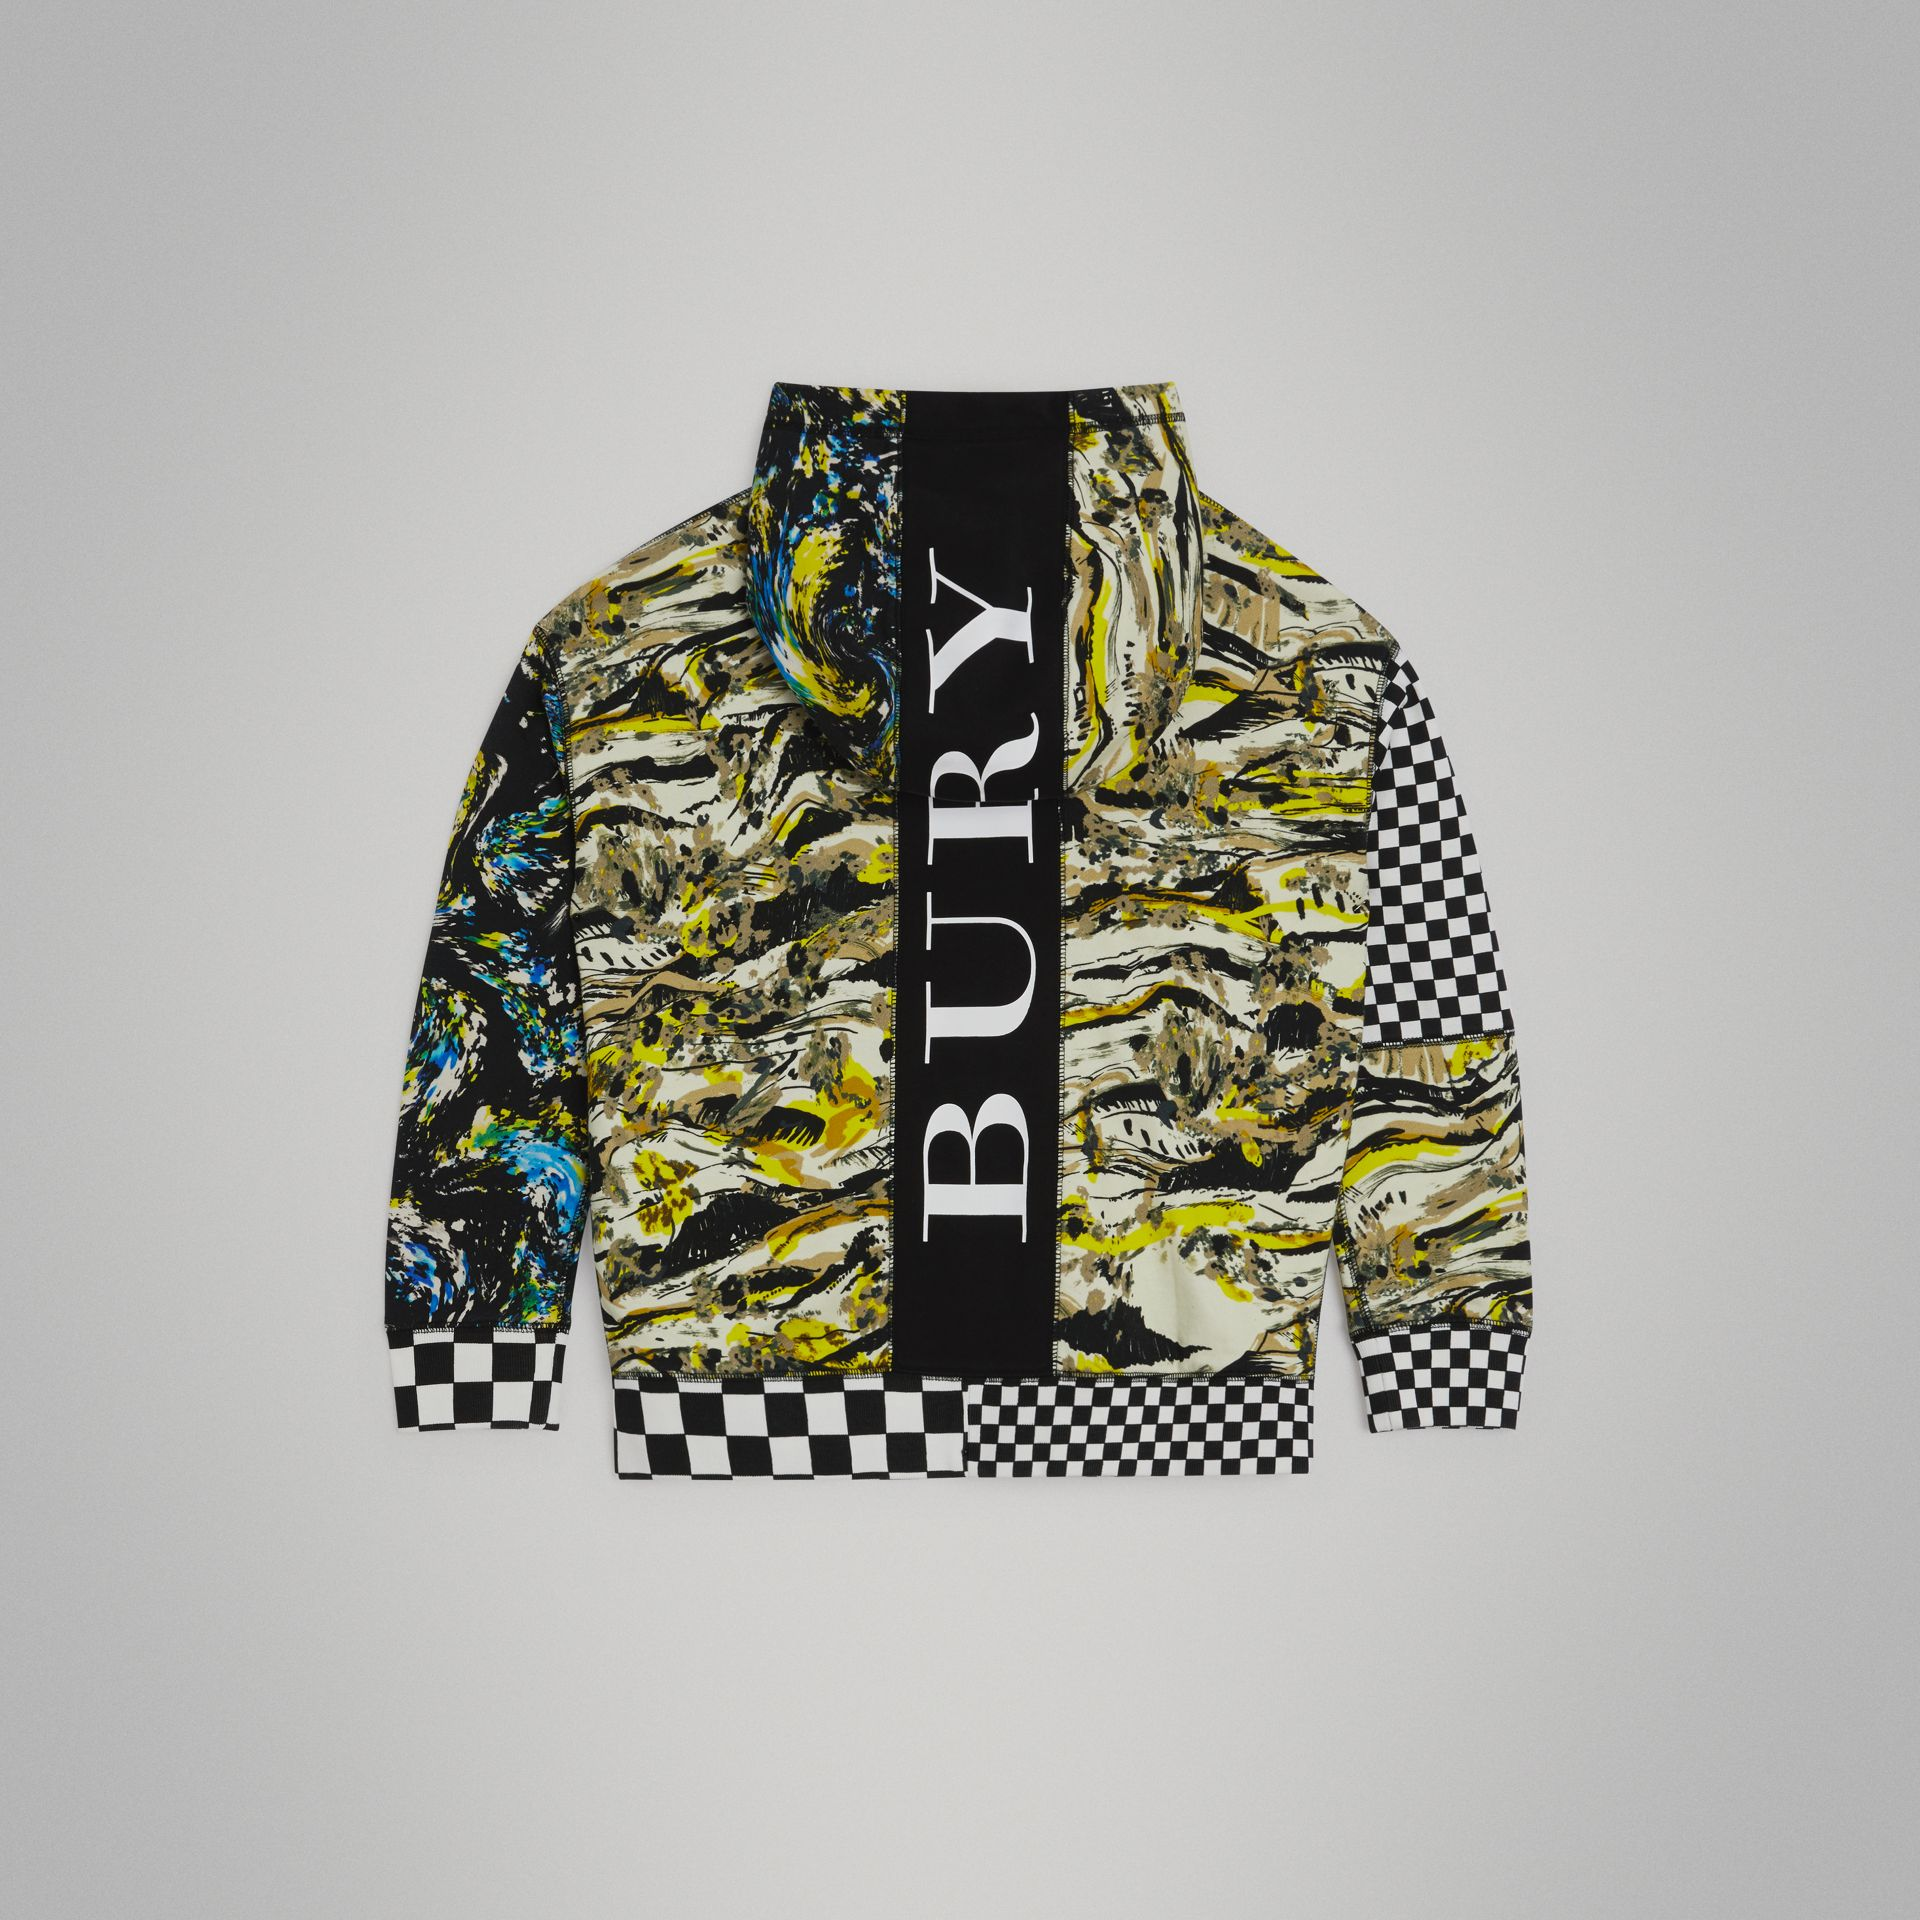 Graphic Print Cotton Hooded Top in Multicolour | Burberry United Kingdom - gallery image 3